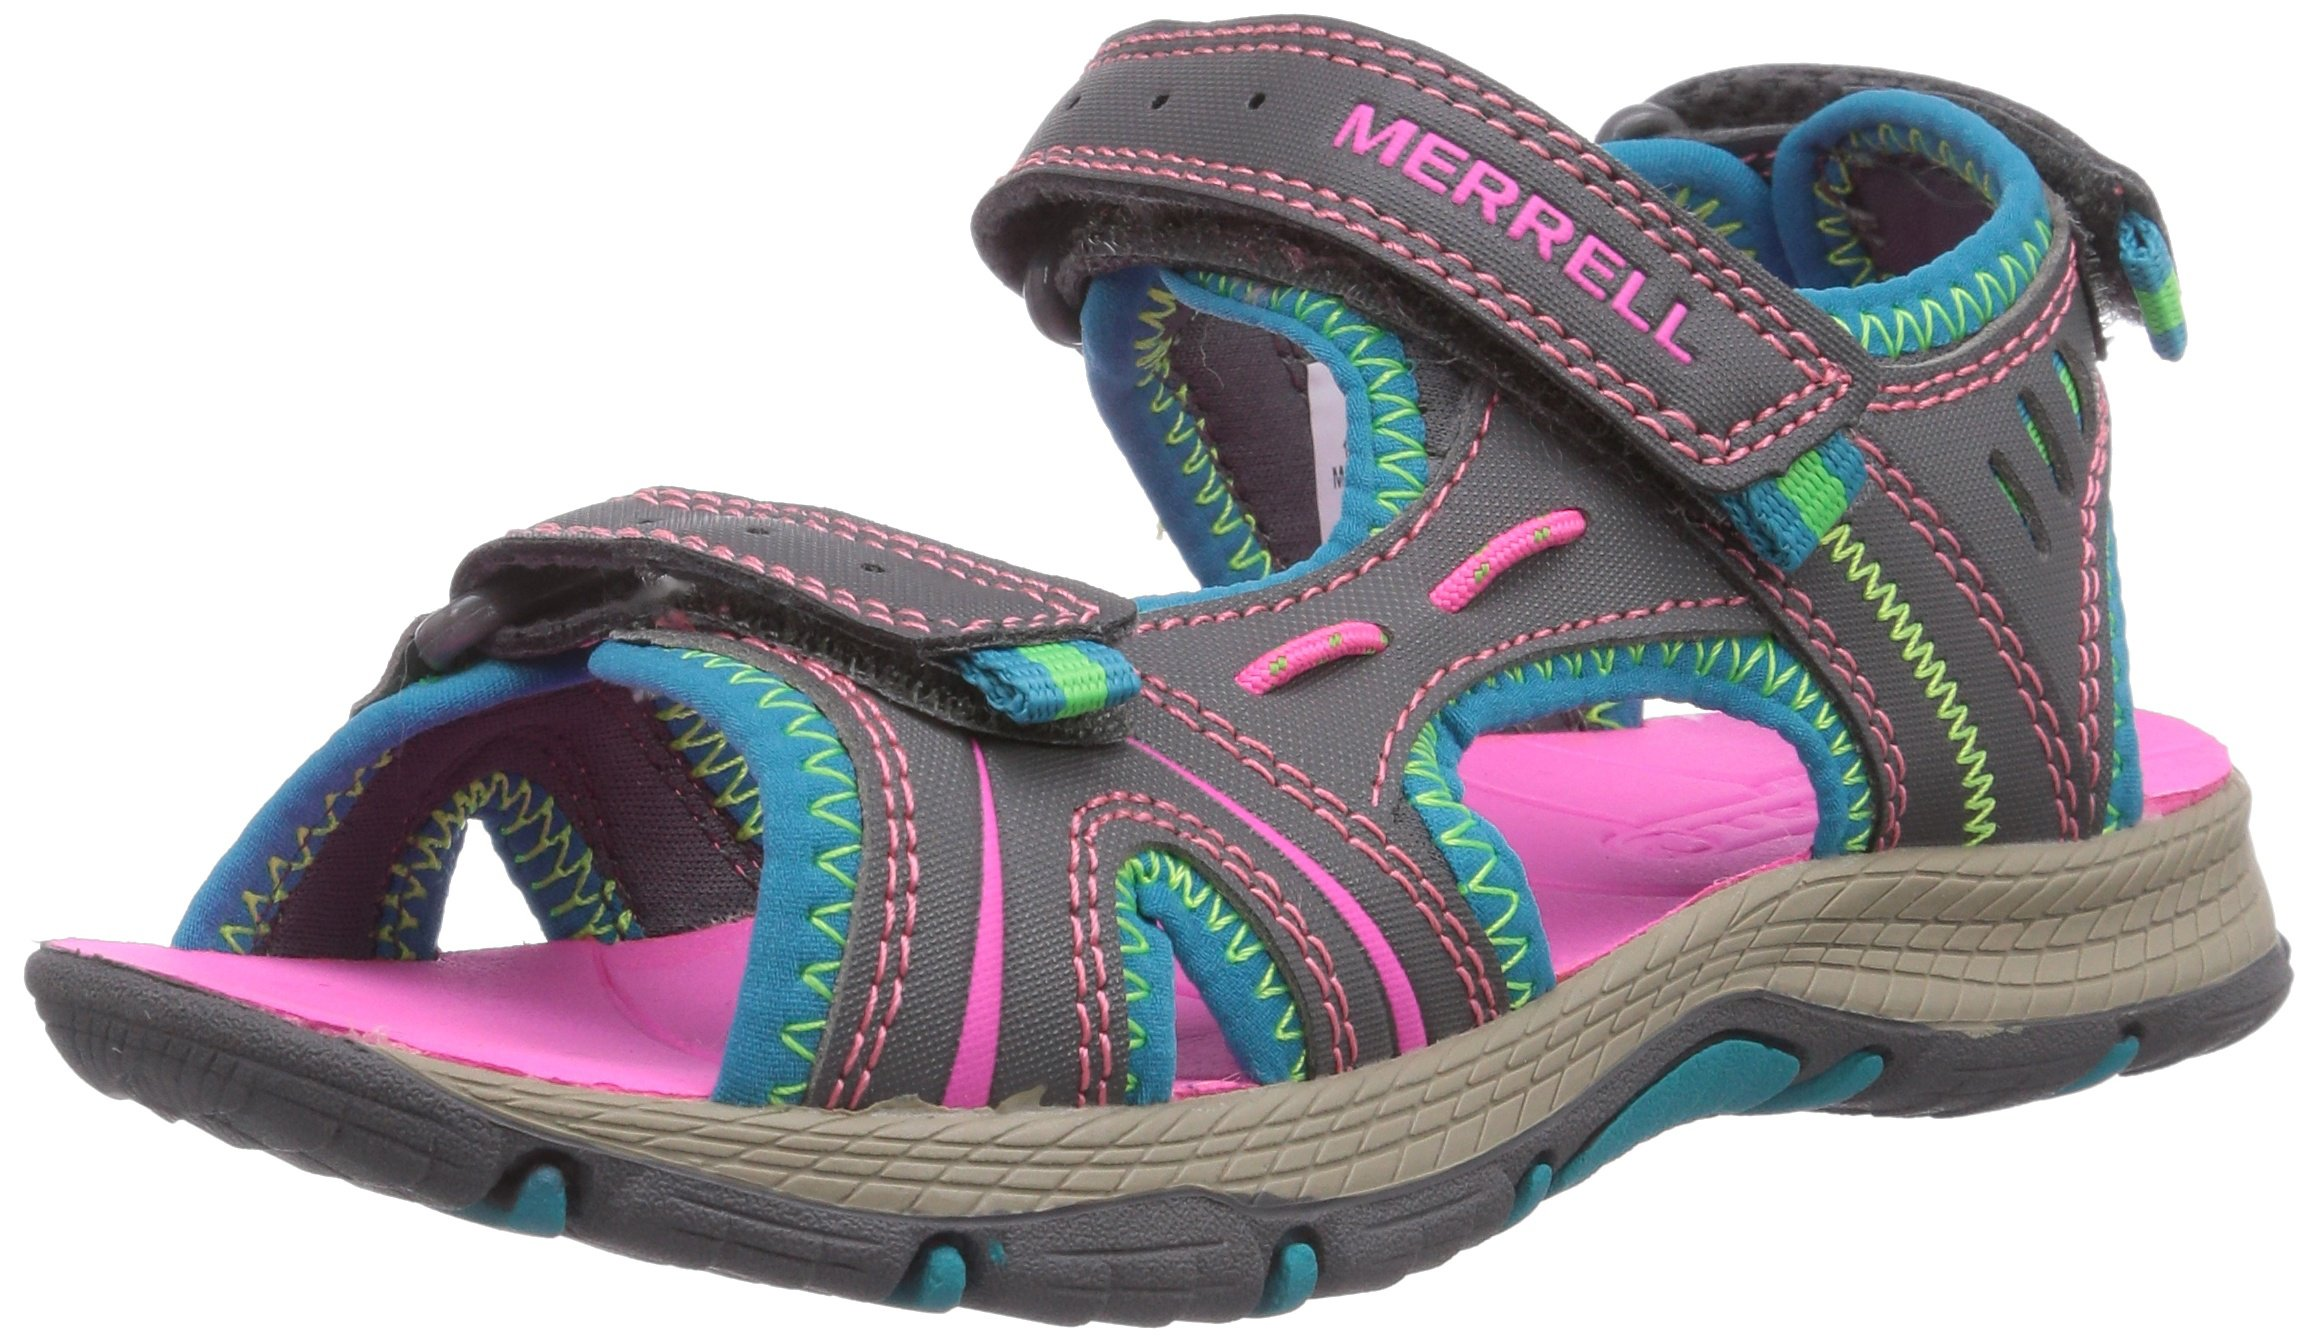 Merrell Panther Athletic Water Sandal , Blue/Pink/Green, 11 M US Little Kid by Merrell (Image #1)